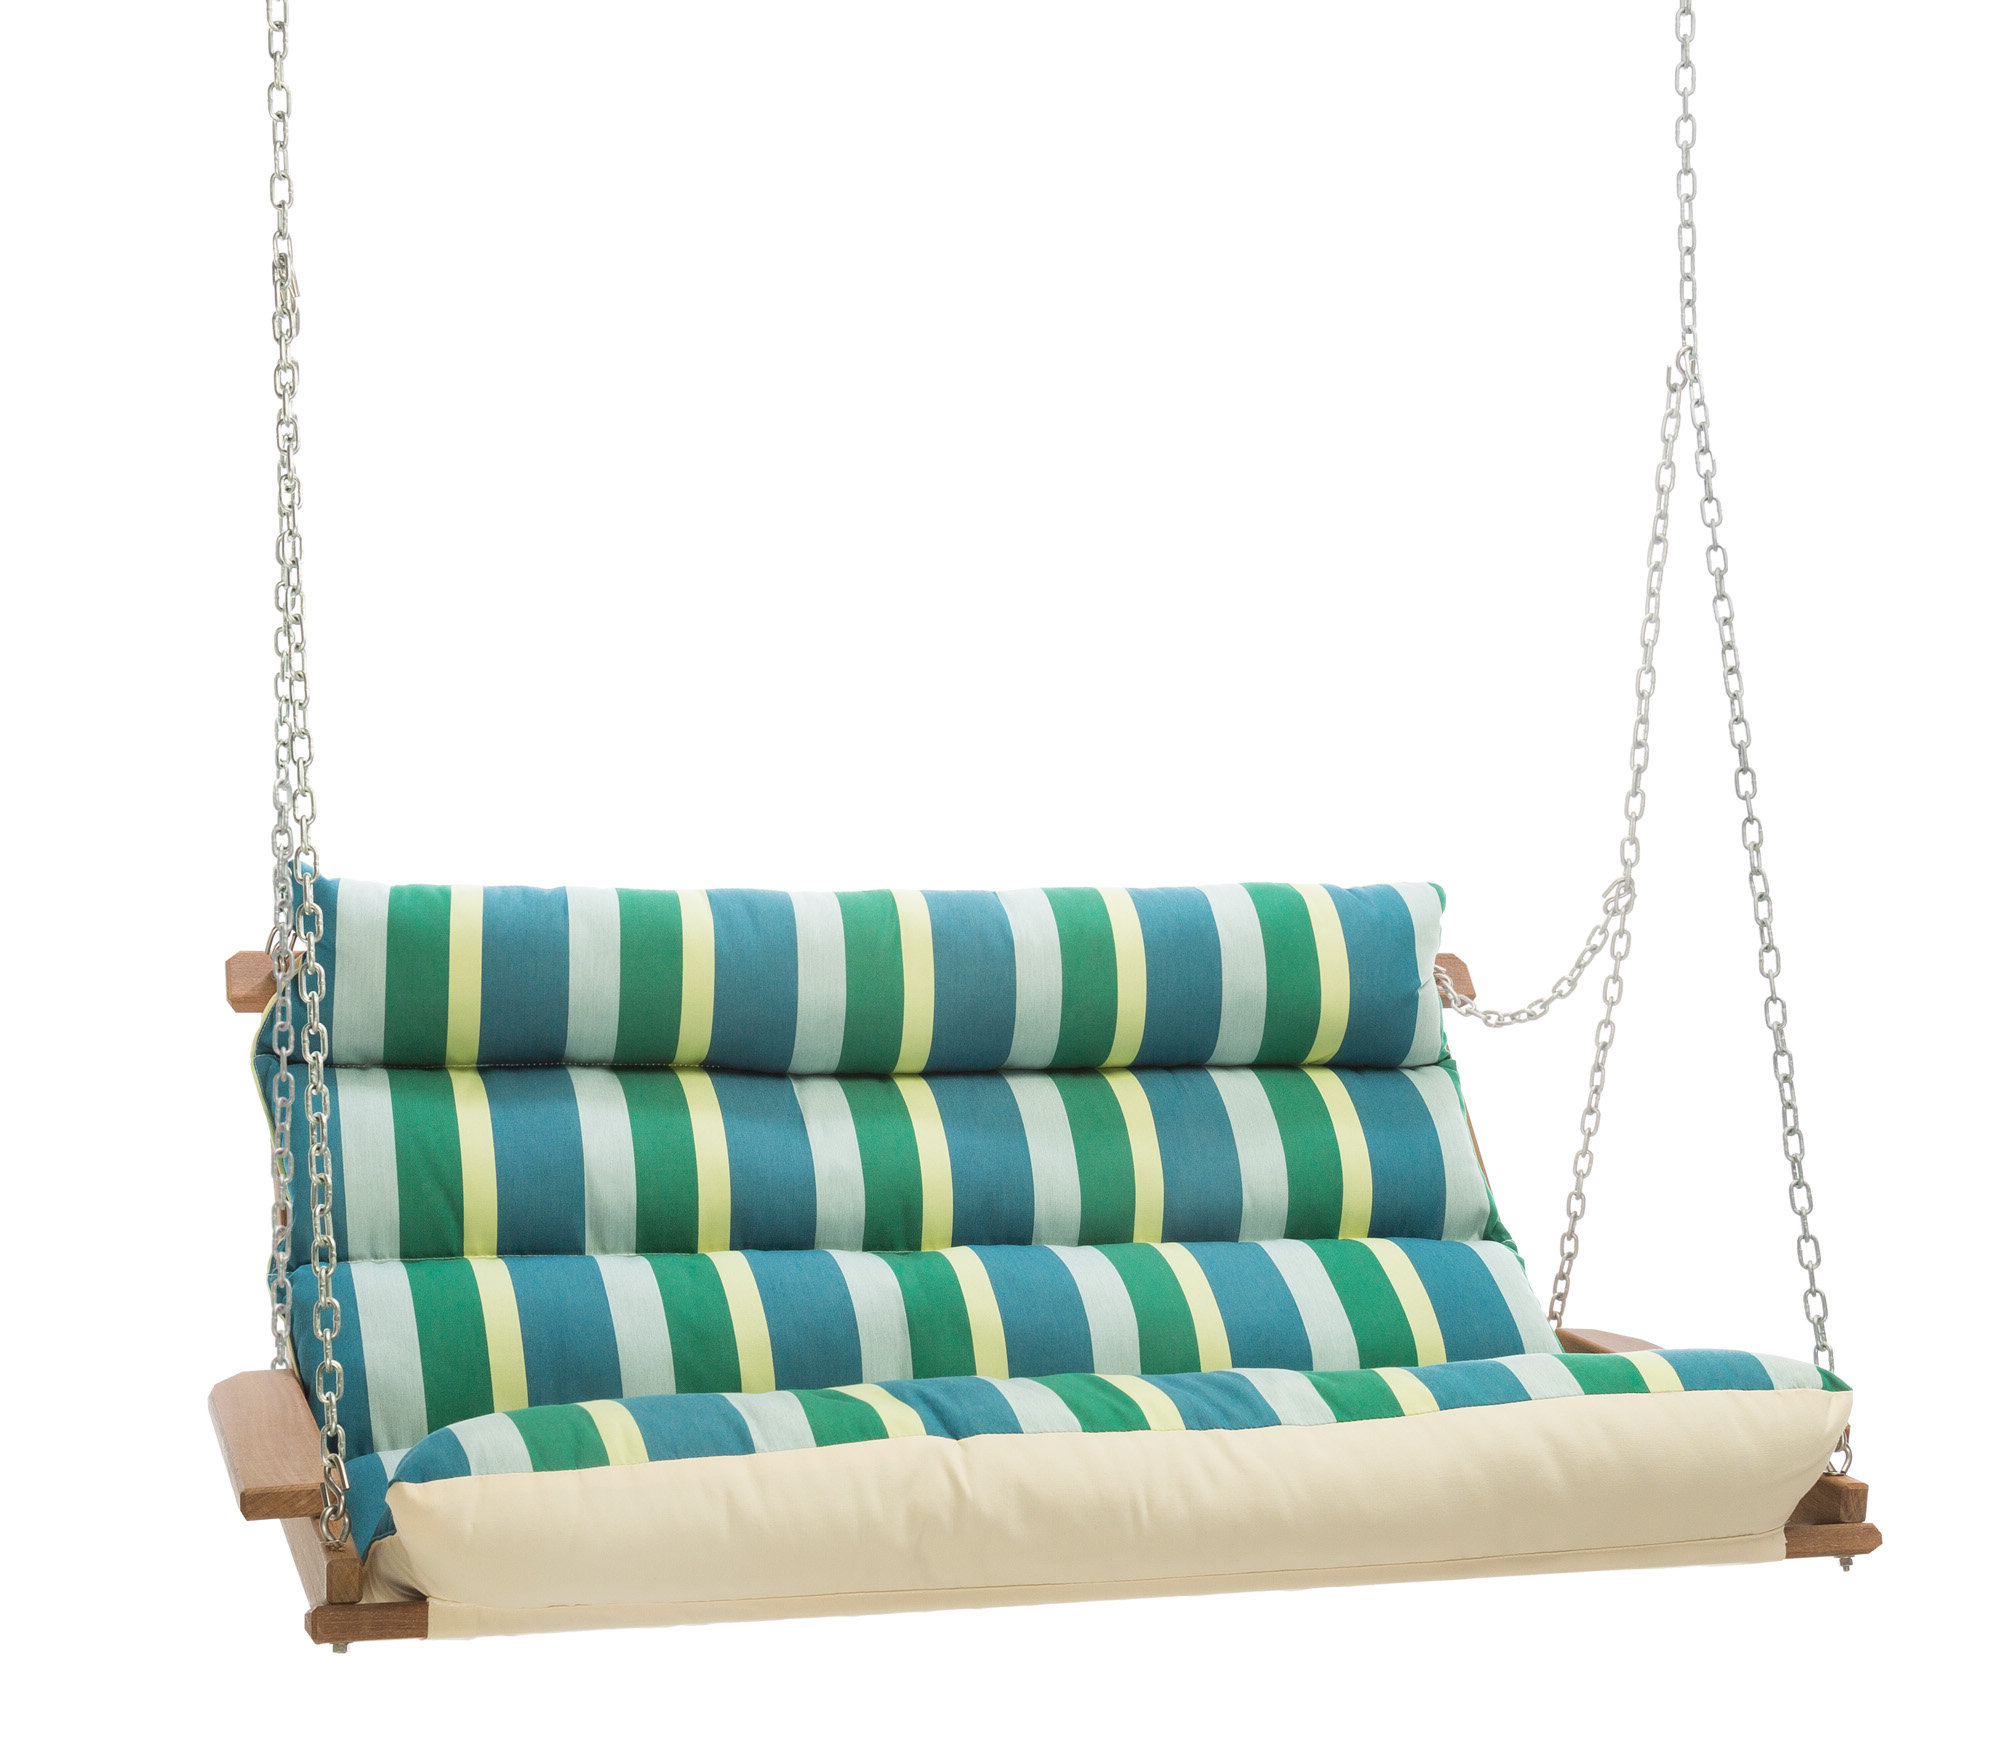 Pacheco Deluxe Sunbrella Porch Swing Pertaining To Most Recently Released Cotton Porch Swings (Gallery 22 of 25)